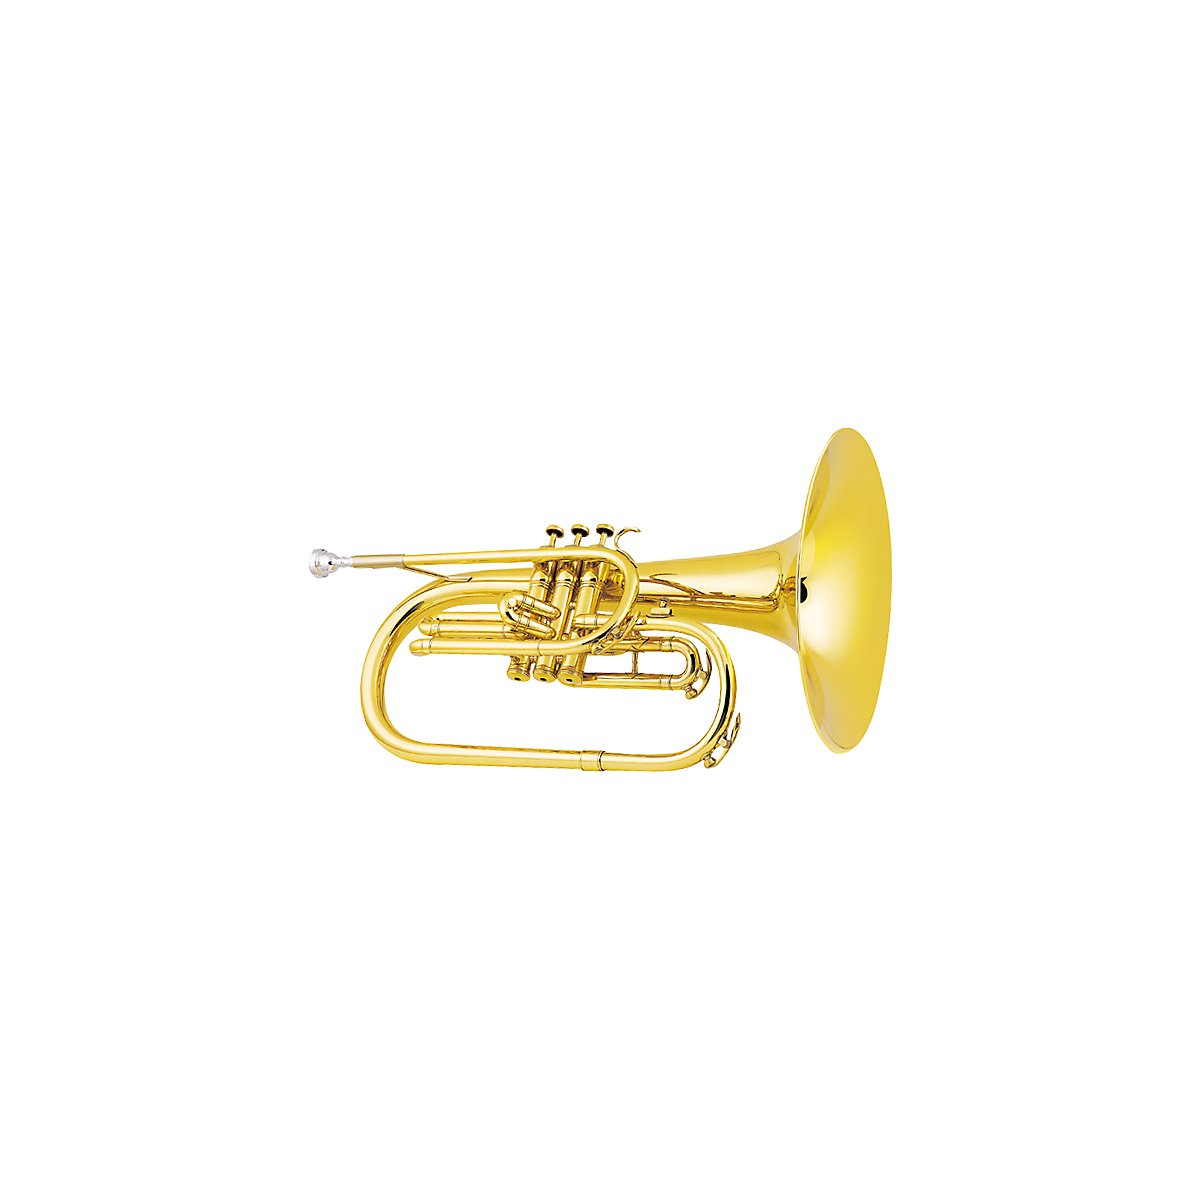 King 1121 Marching F Mellophone in Lacquer